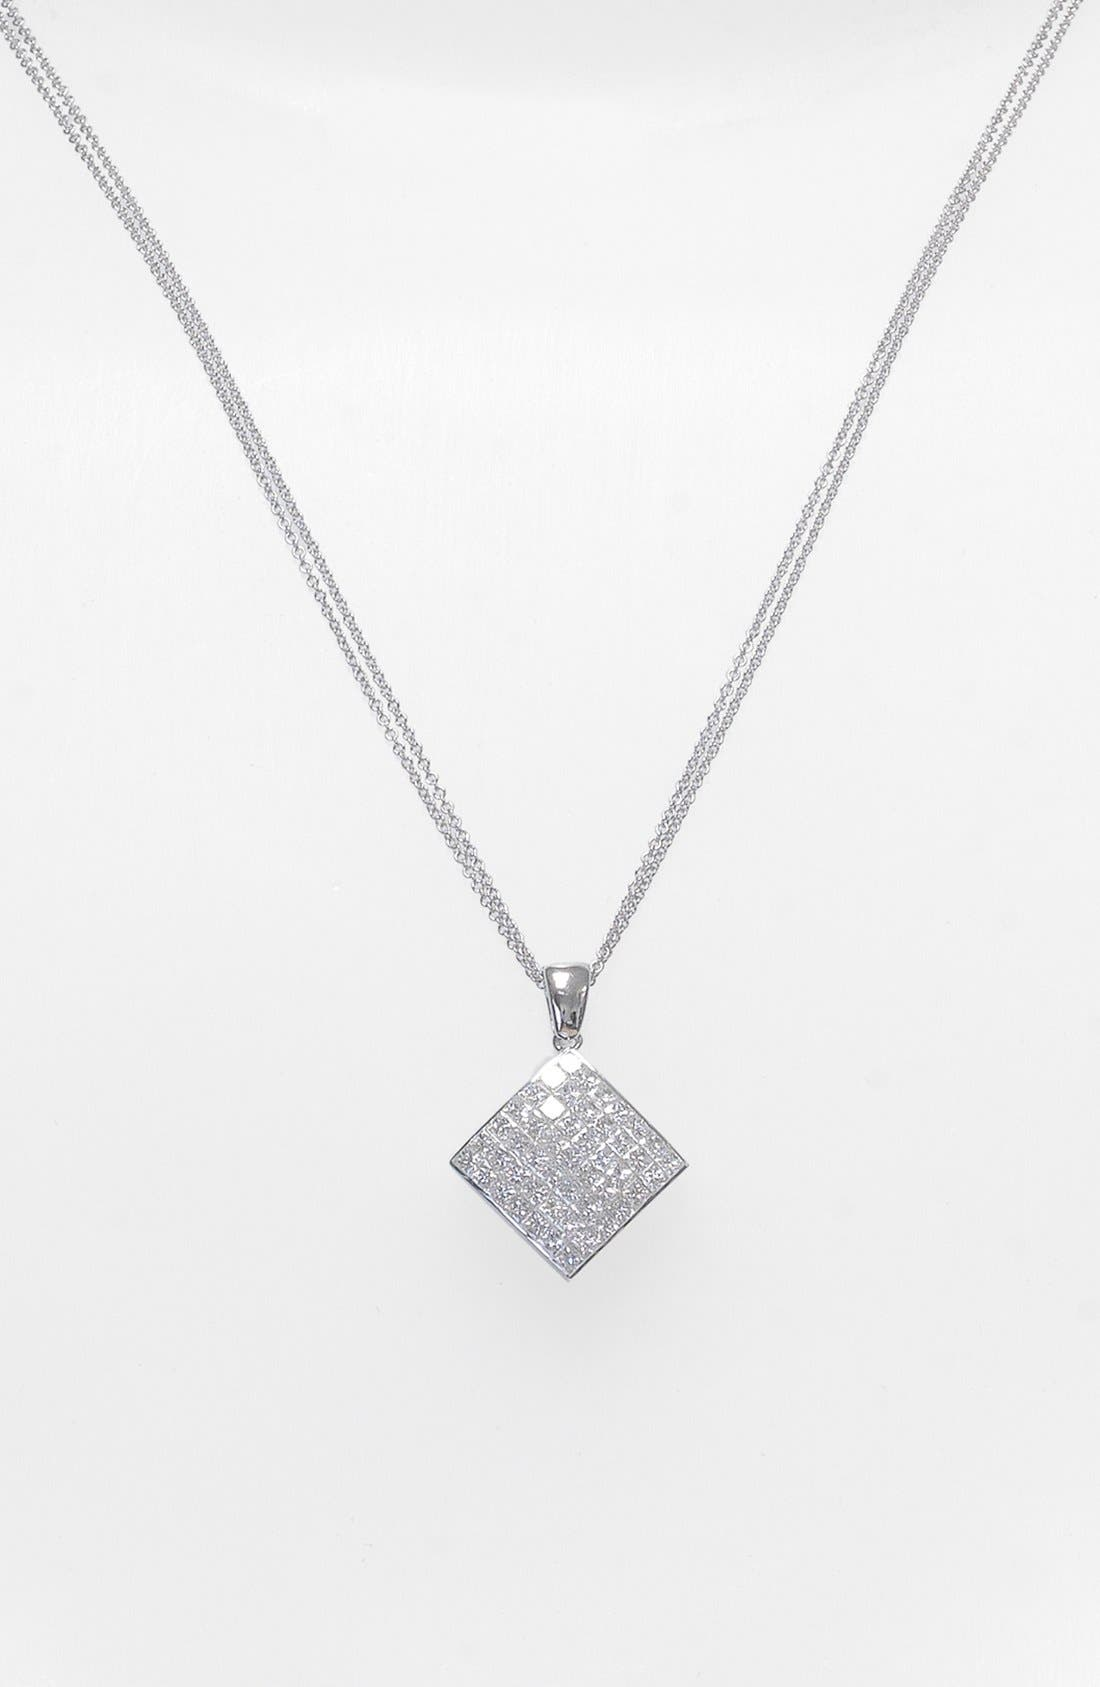 Main Image - Bony Levy Diamond Pendant Necklace (Nordstrom Exclusive) (Limited Edition)